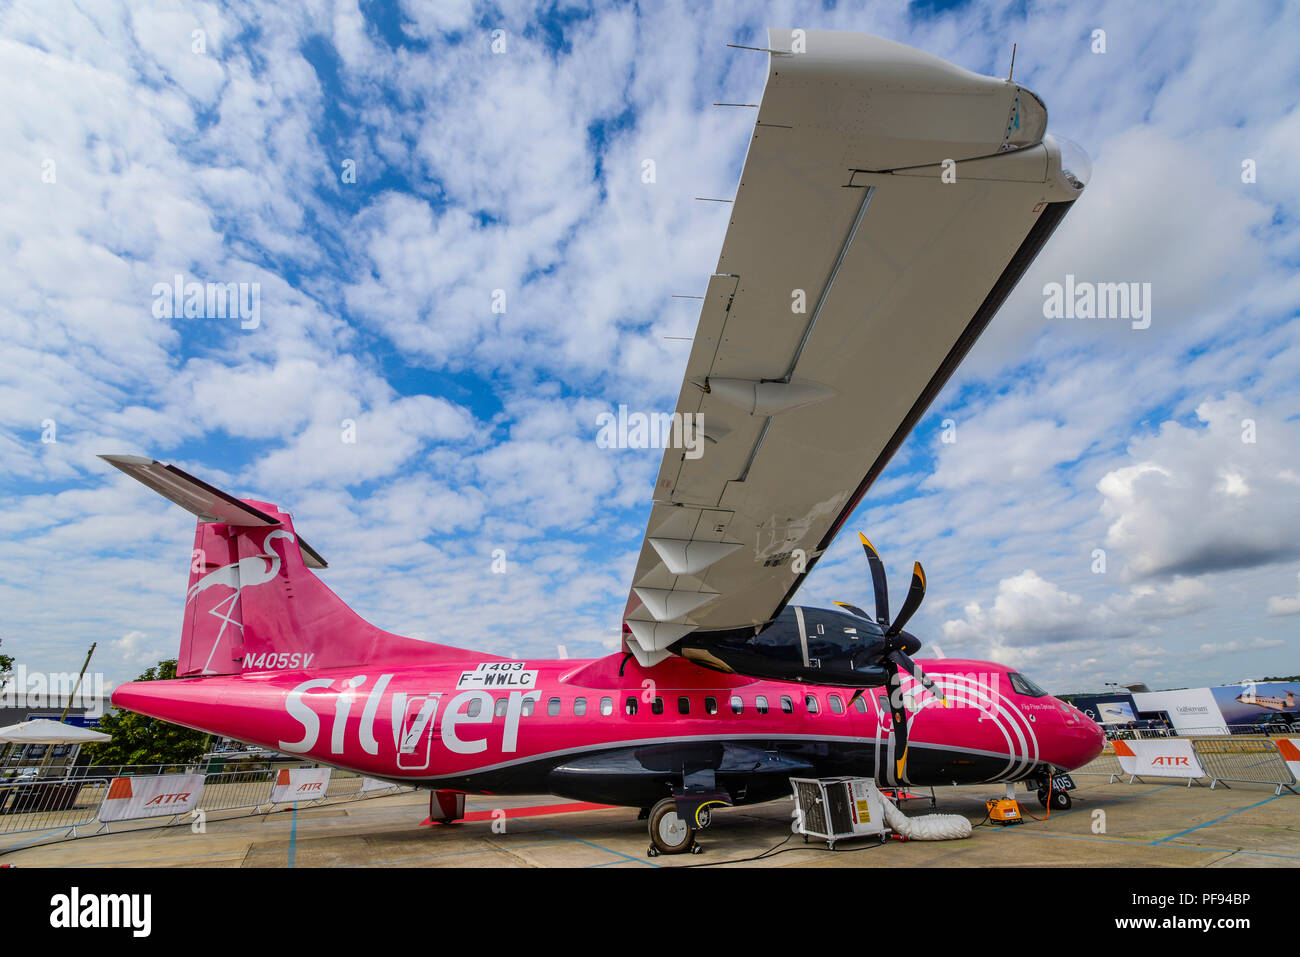 Silver Airways ATR-42 airliner plane F-WWLC N405SV at the Farnborough International Airshow FIA, aviation, aerospace trade show. Flip flops optional - Stock Image